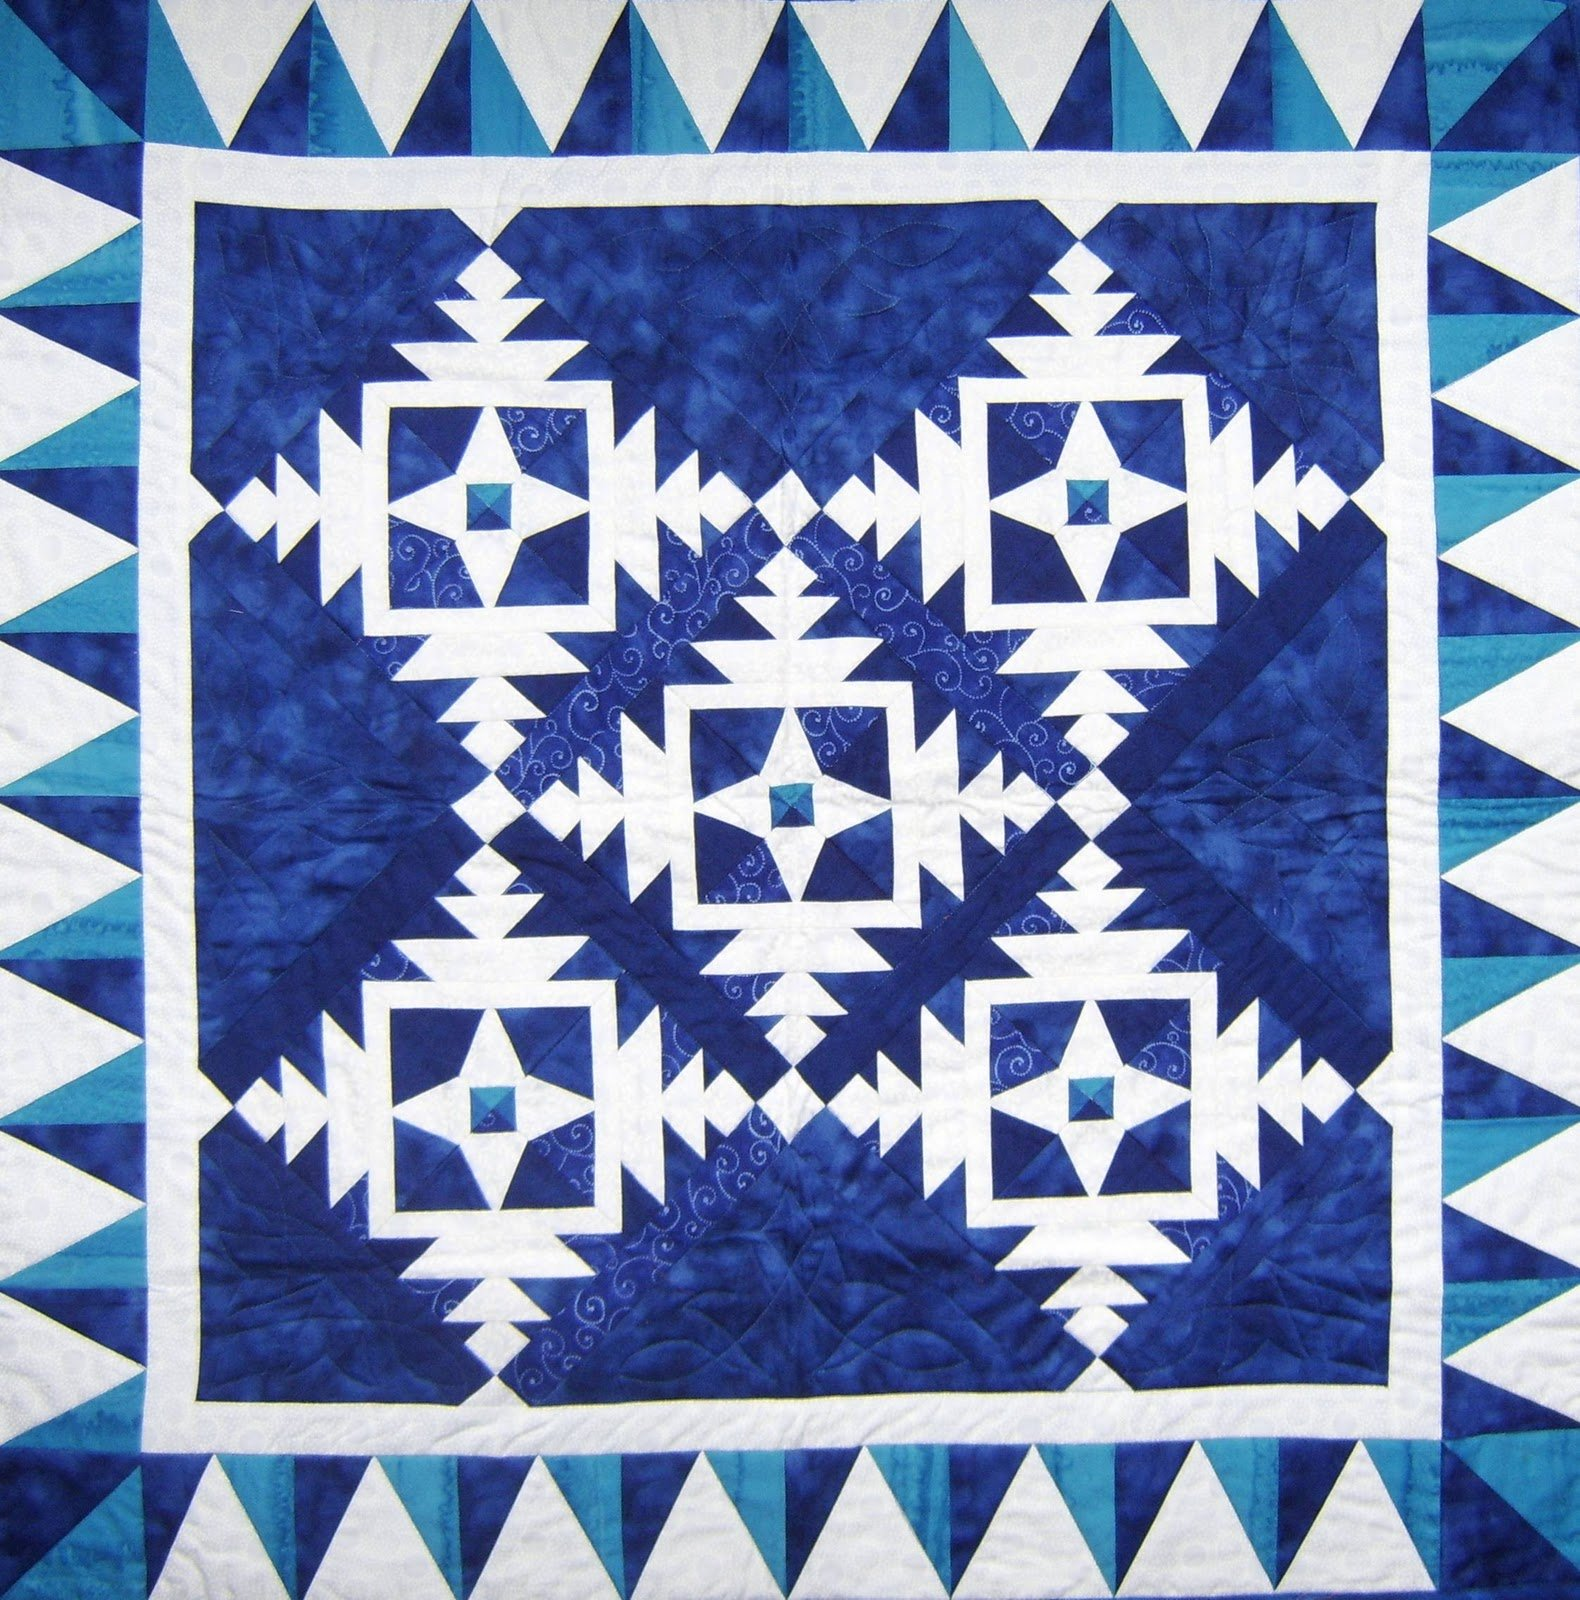 Quilting Designs On Paper : Free Tutorial - Paper Snowflake Block by Sue